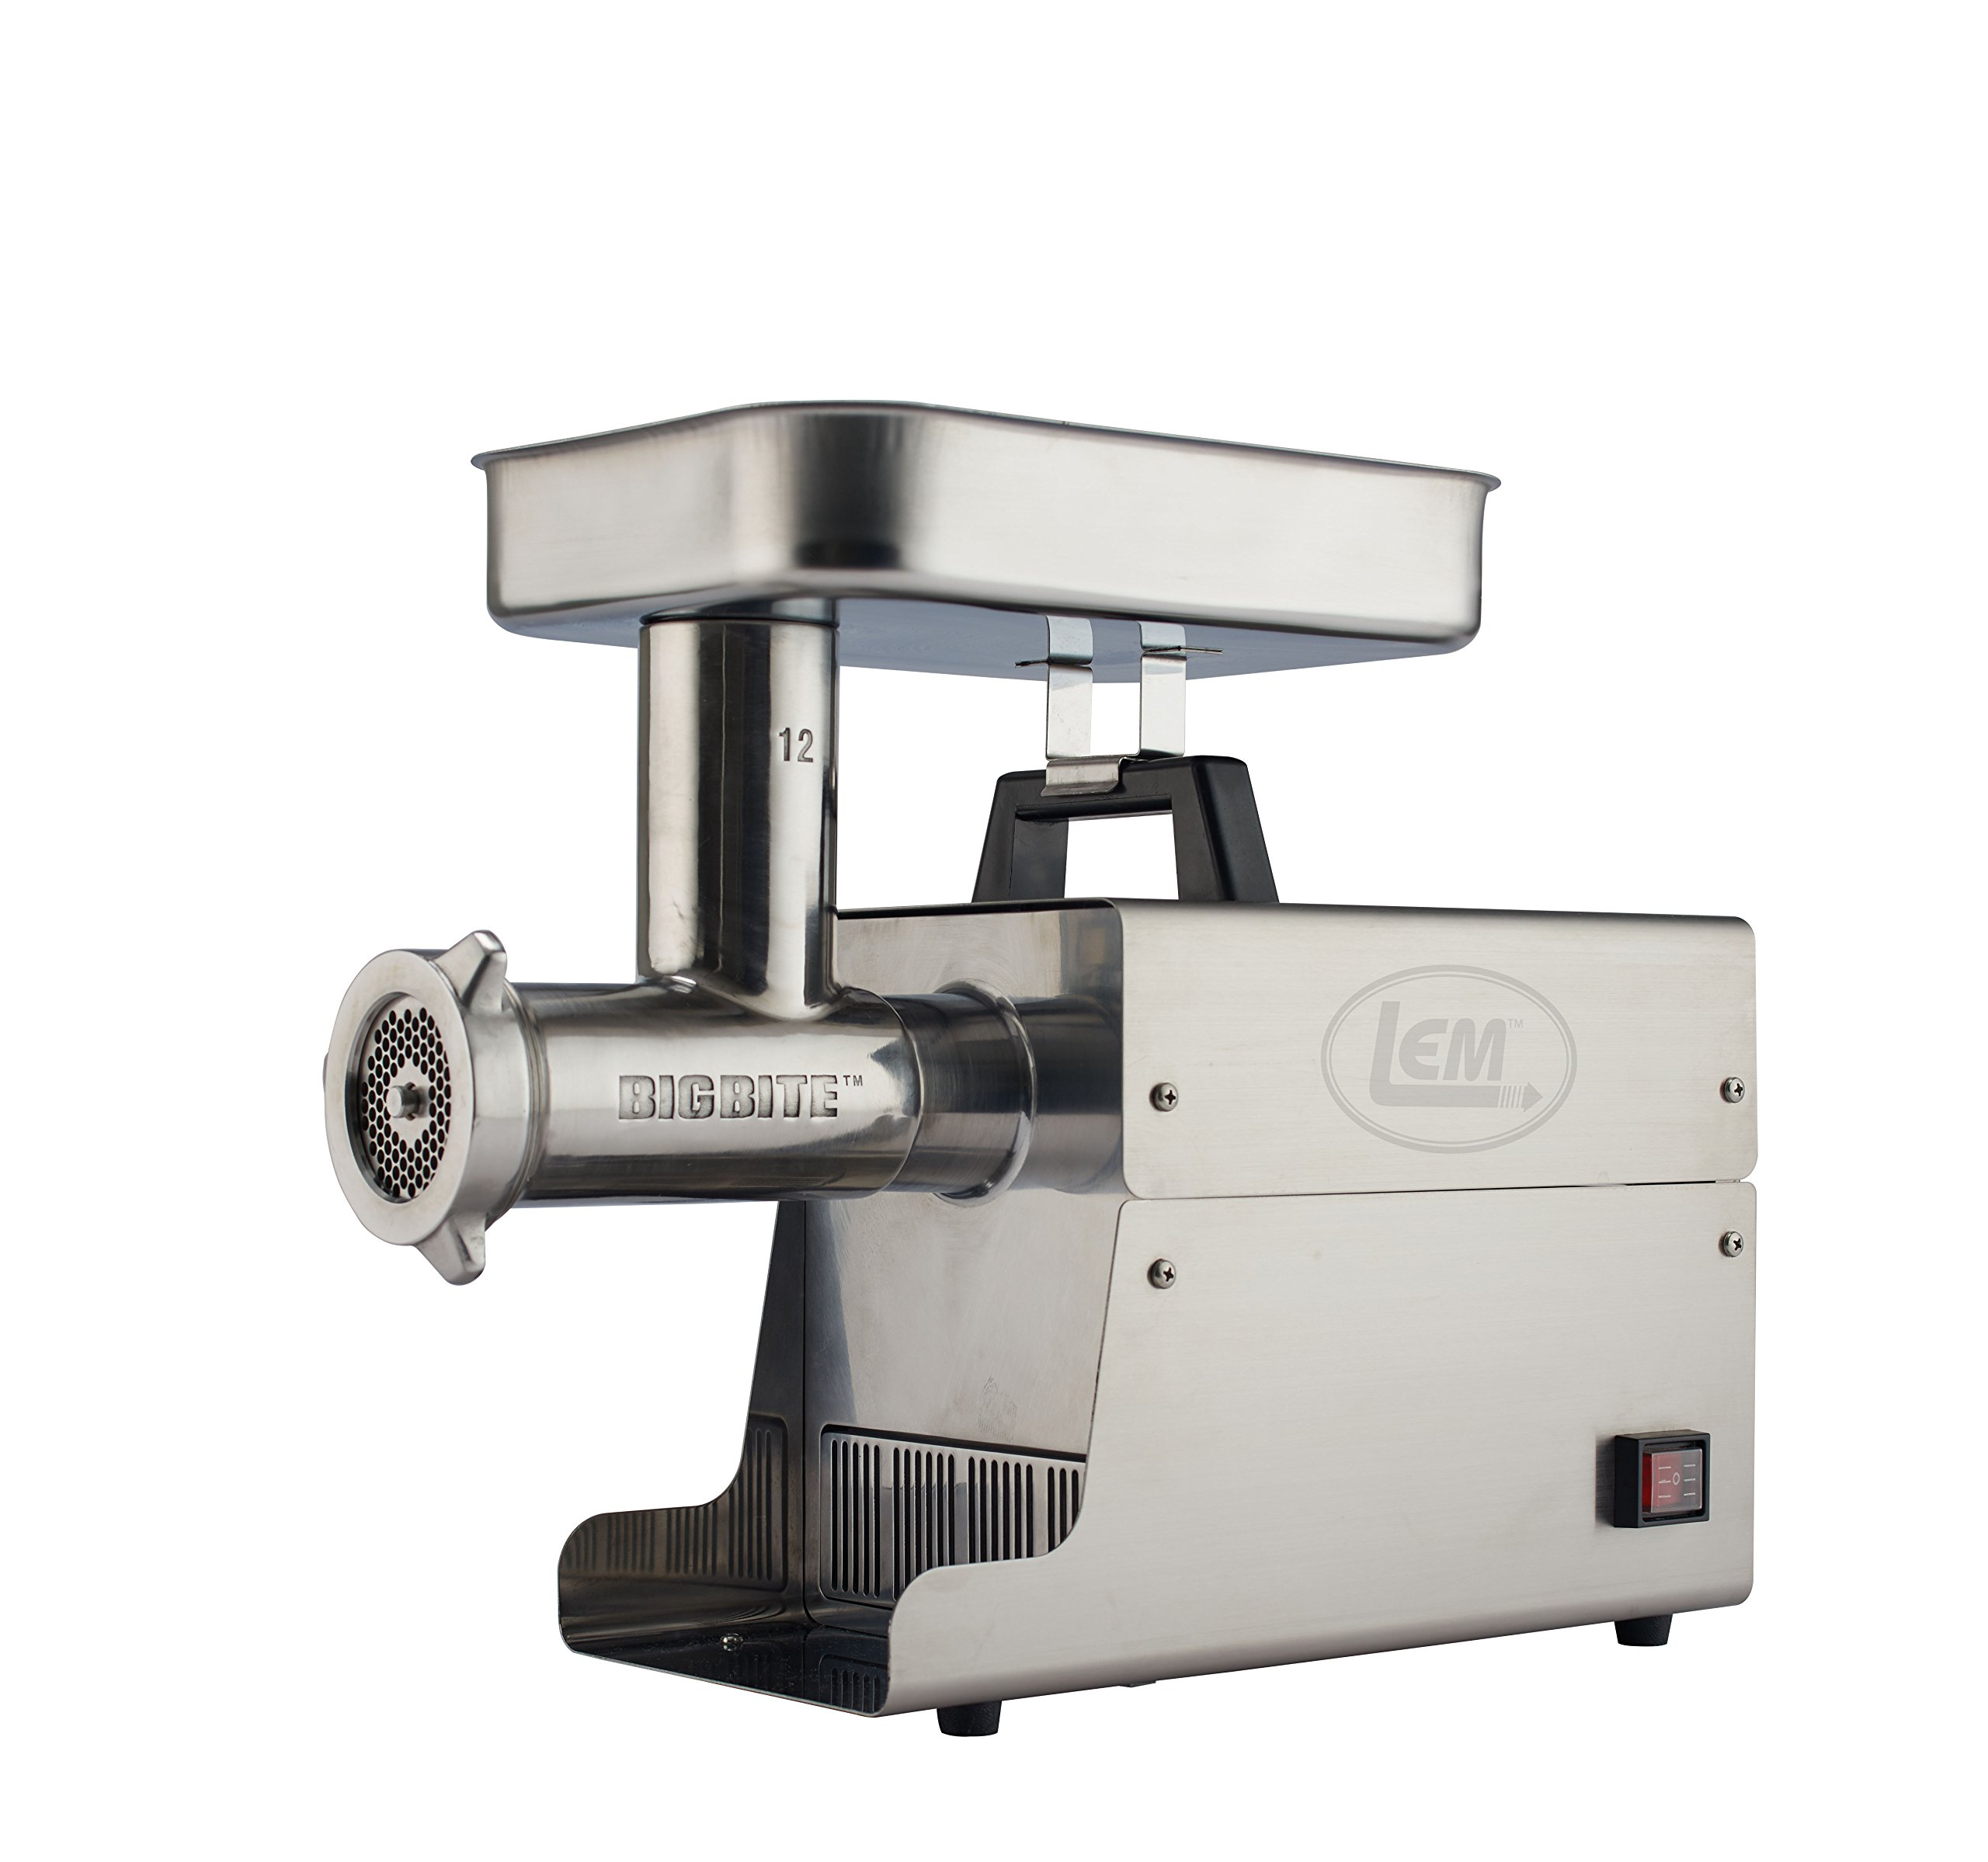 LEM Products 17801 Big Bite #12 .75HP Stainless Steel Electric Meat Grinder by LEM